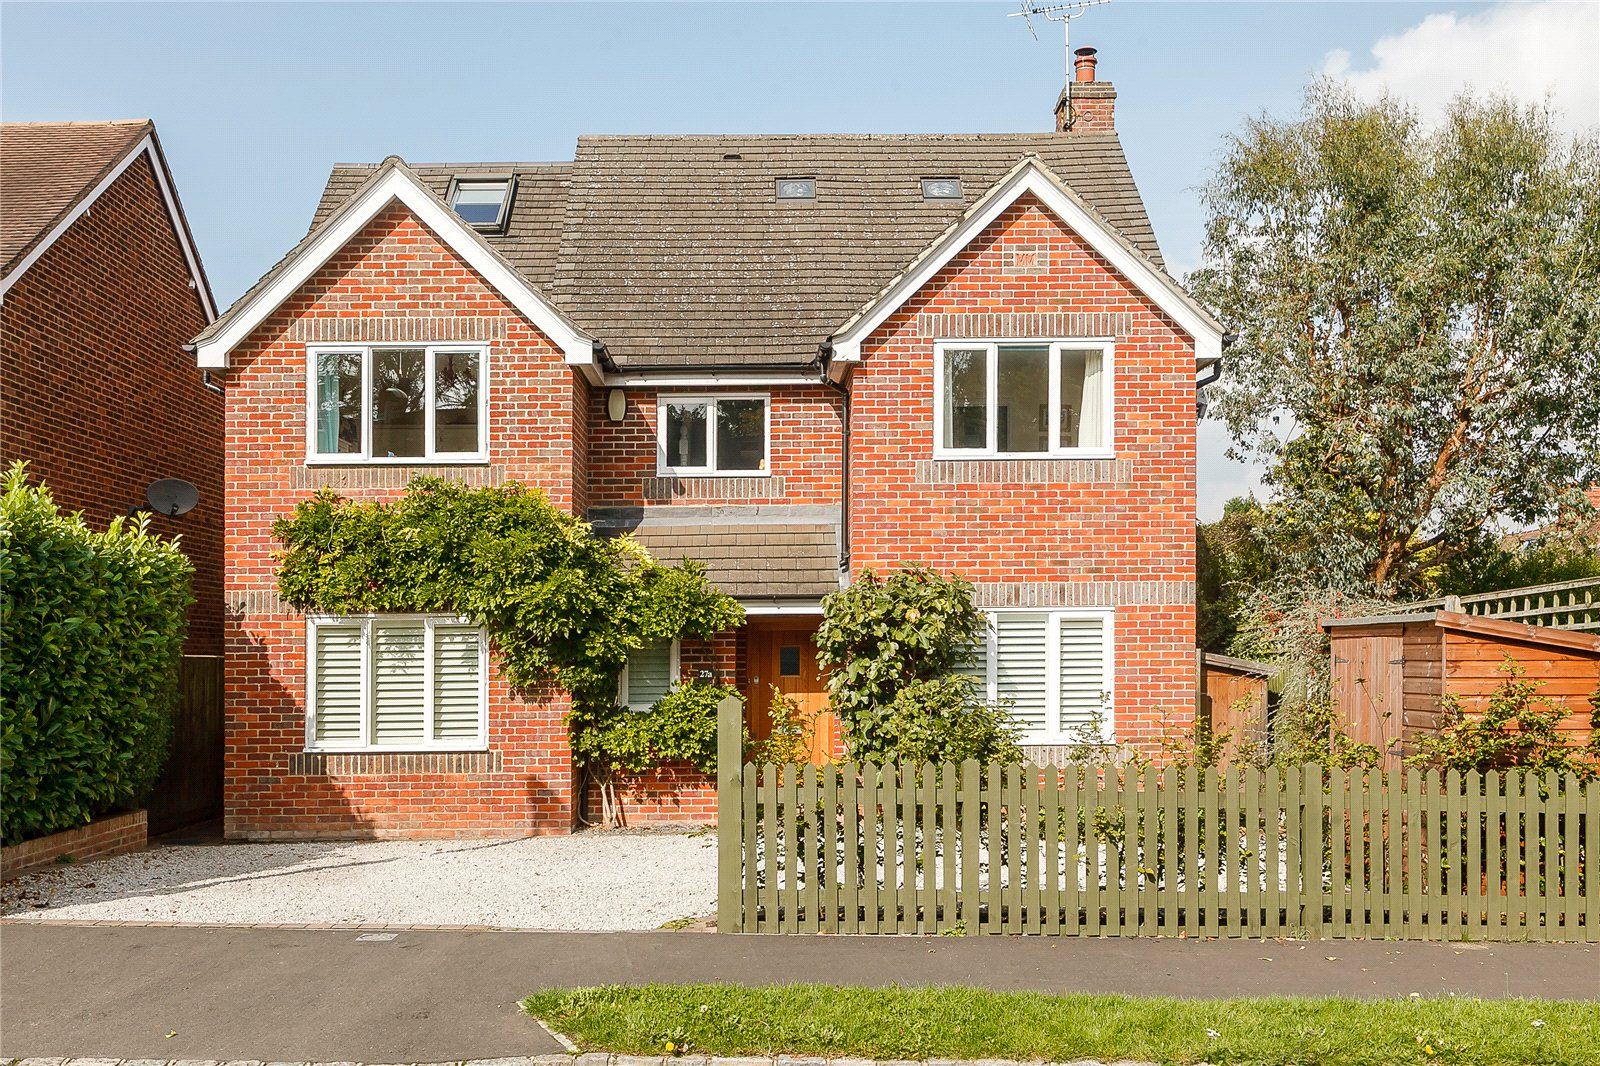 5 Bedrooms Detached House for sale in Manor Road, Henley-on-Thames, Oxfordshire, RG9